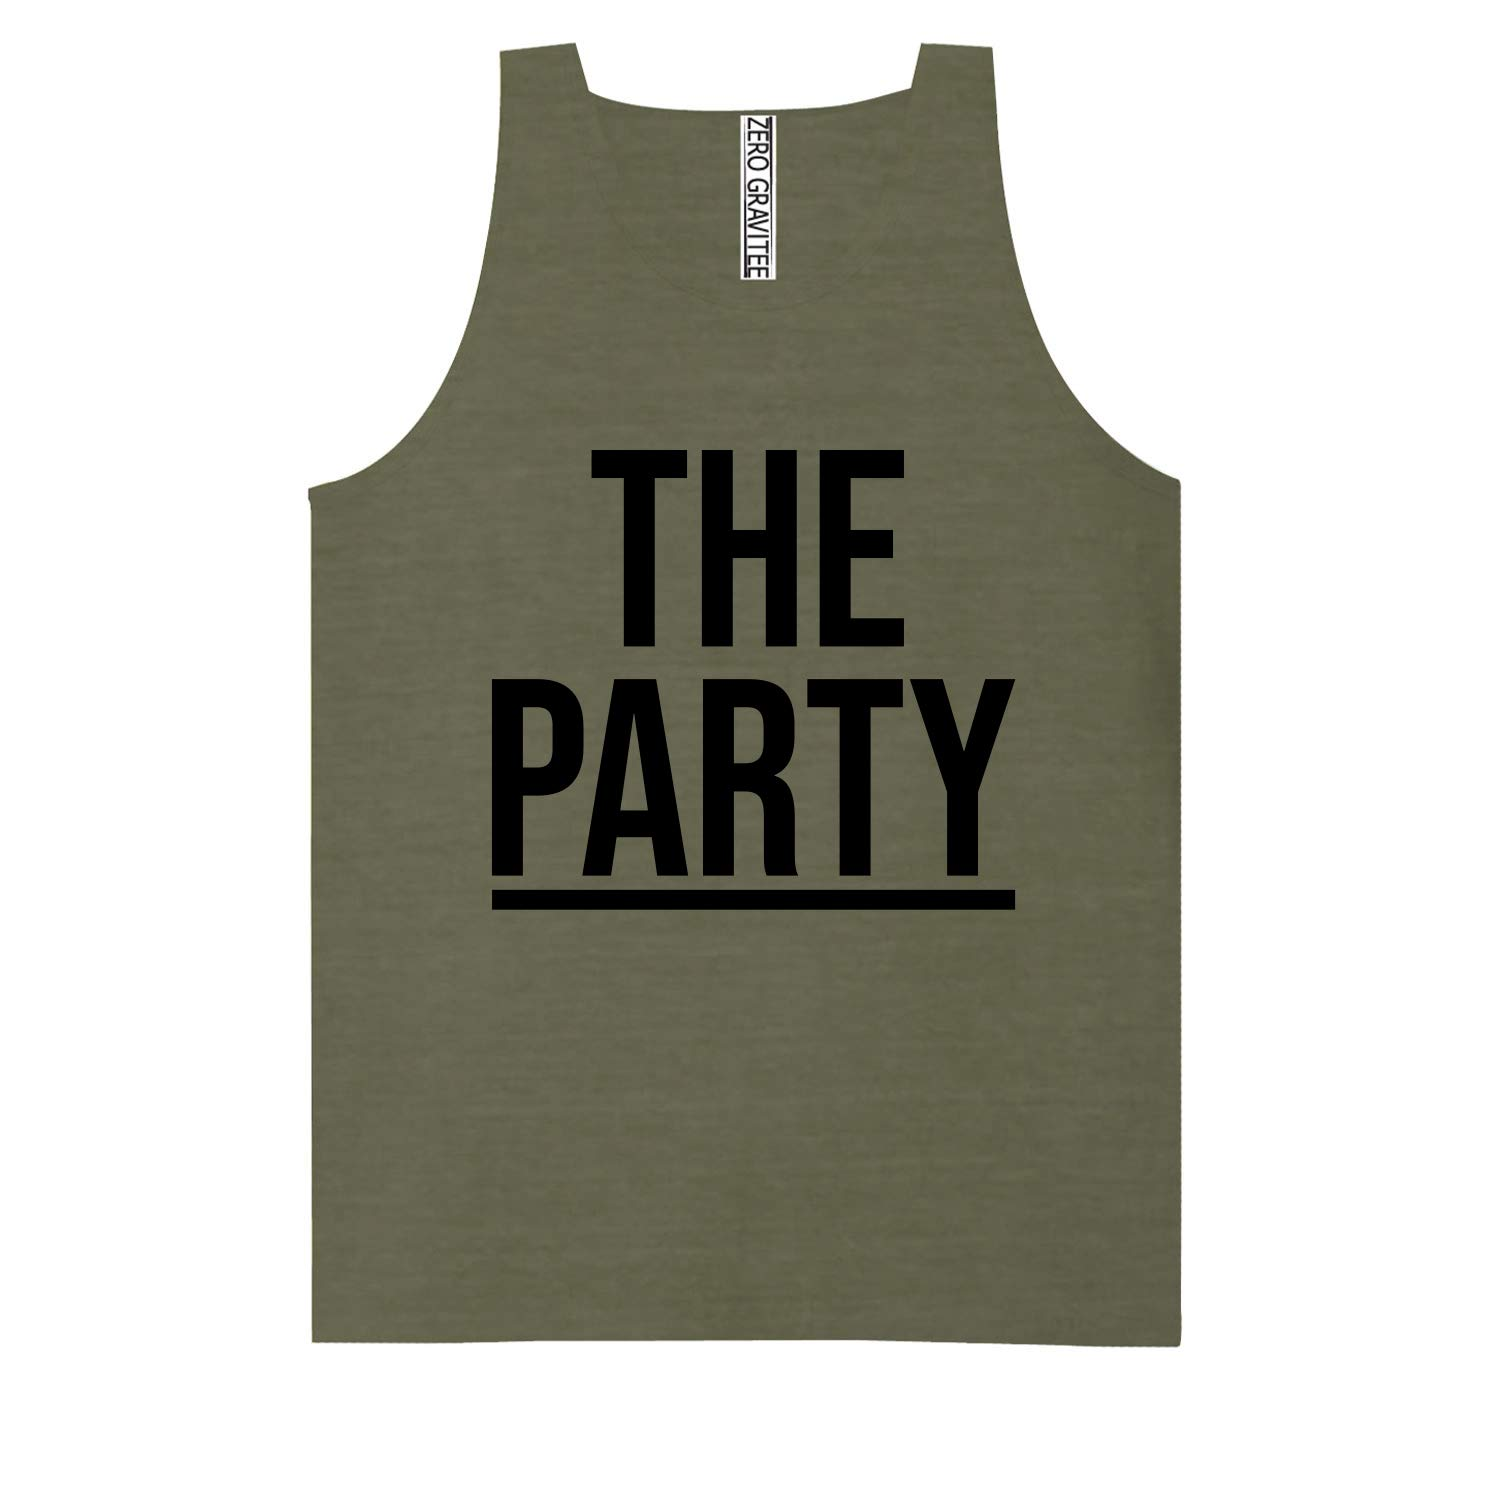 The Party Adult Pigment Dye Tank Top